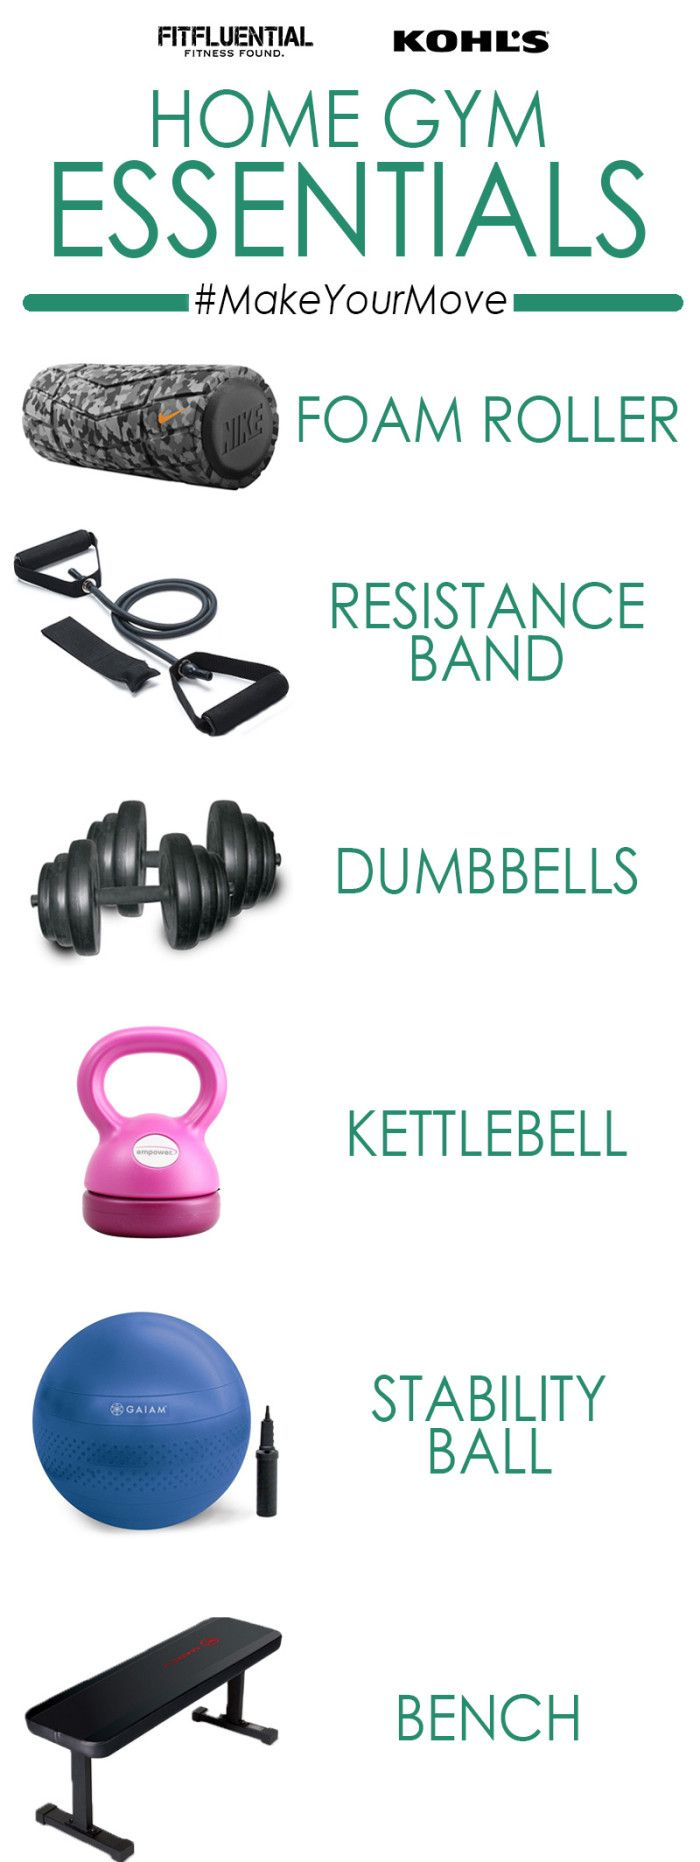 14 best Home gym images on Pinterest | Fitness studio, Gym and Total ...